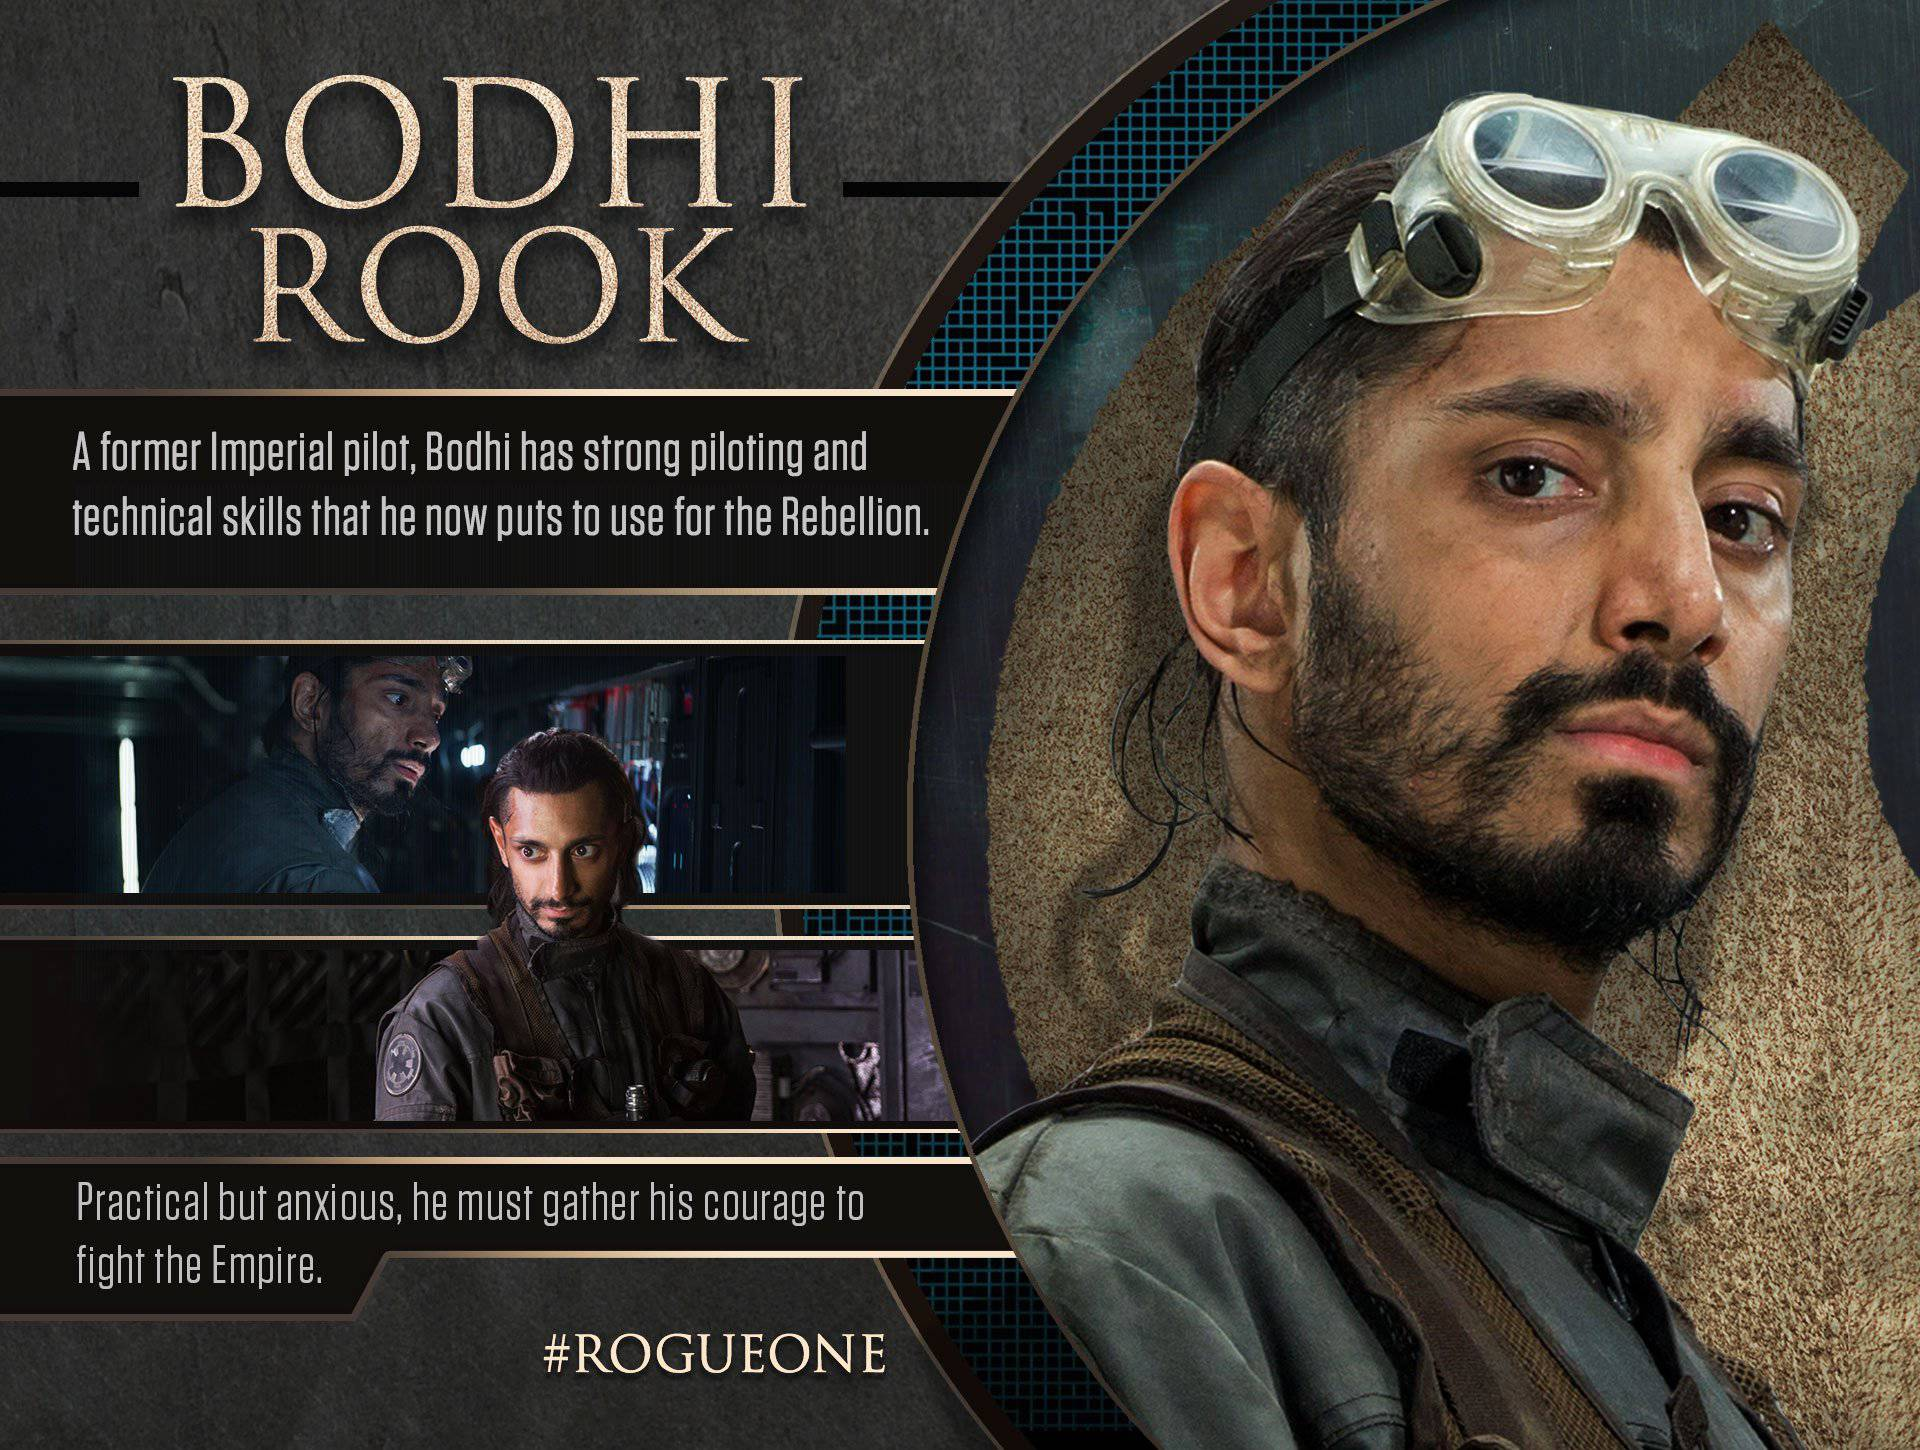 rogue-one-character-card-bodhi-rook